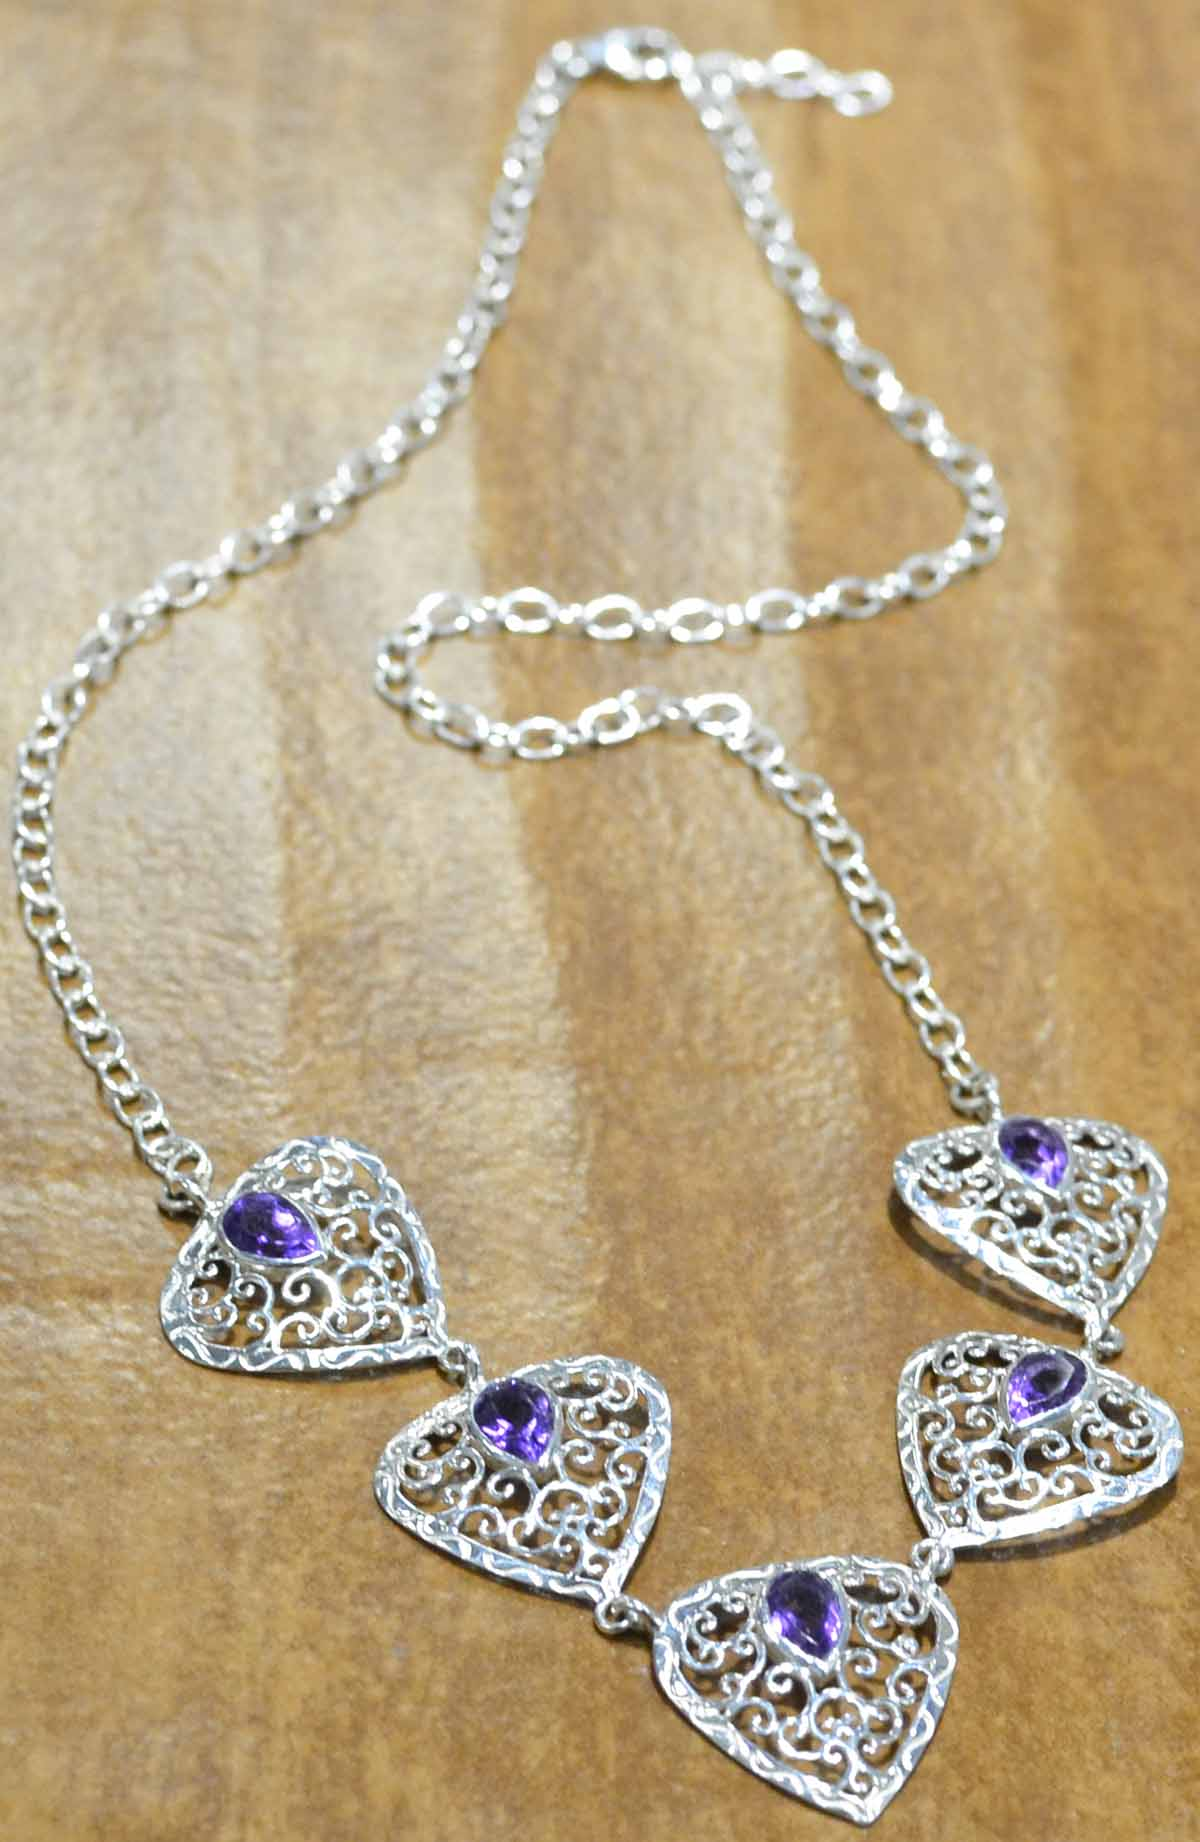 Amethyst and sterling silver filigree necklace